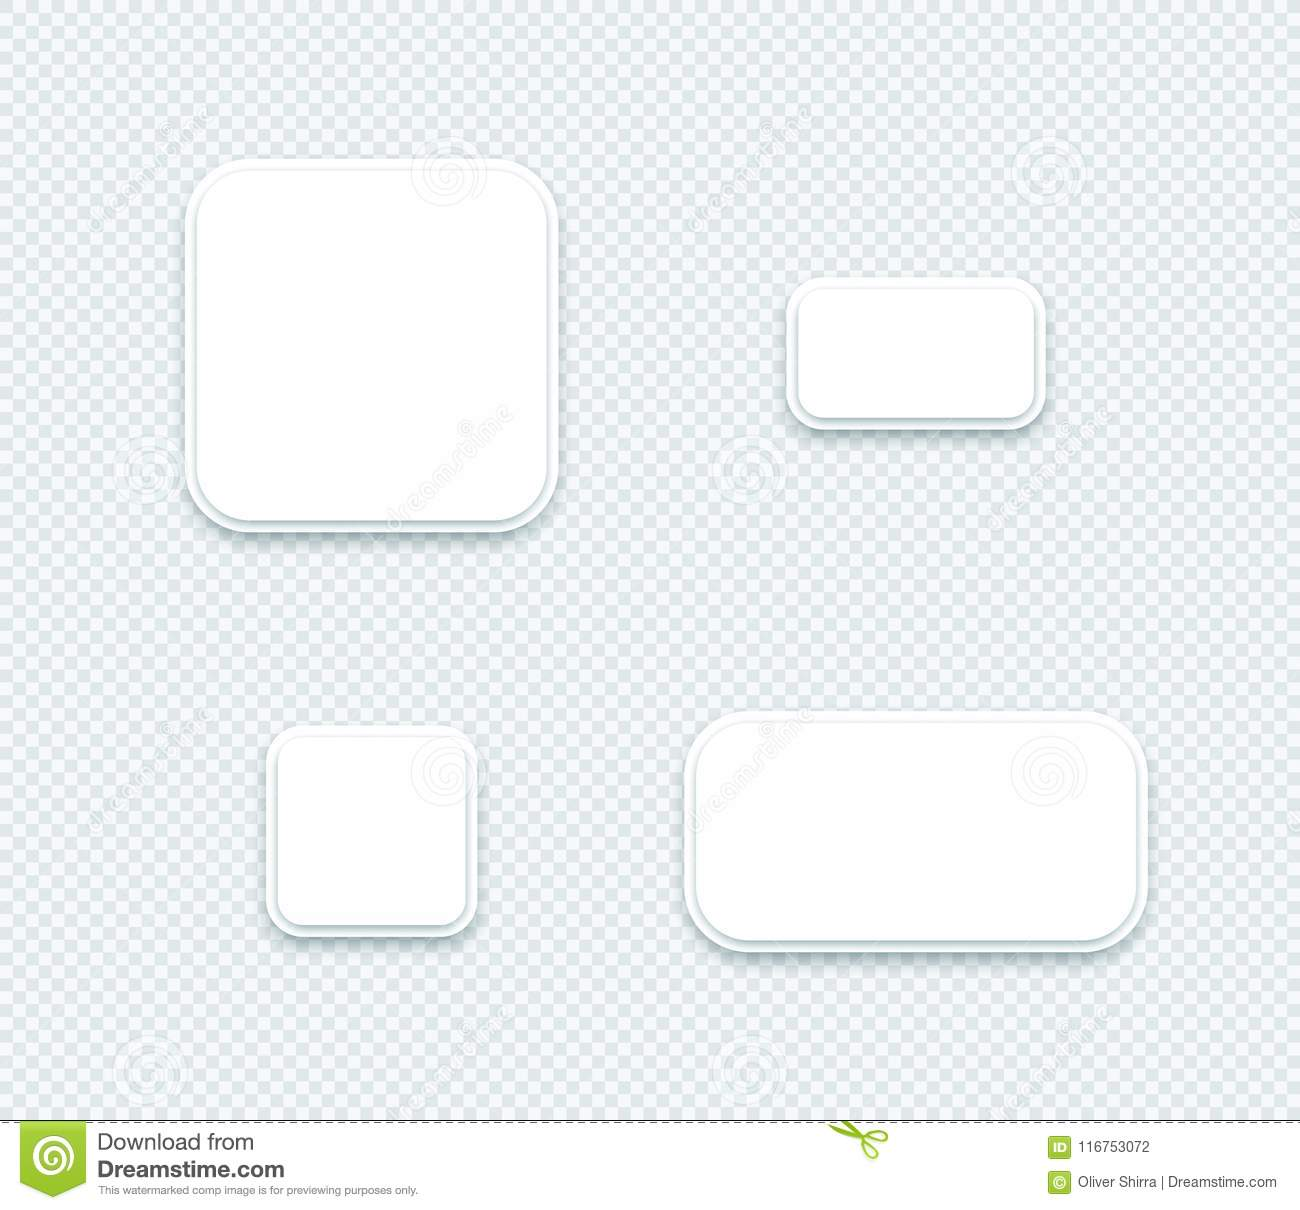 Square Png Stock Illustrations 3 075 Square Png Stock Illustrations Vectors Clipart Dreamstime All png & cliparts images on nicepng are best quality. https www dreamstime com vector set square overlapping layer shapes blank white space text editable transparent drop shadows png image116753072